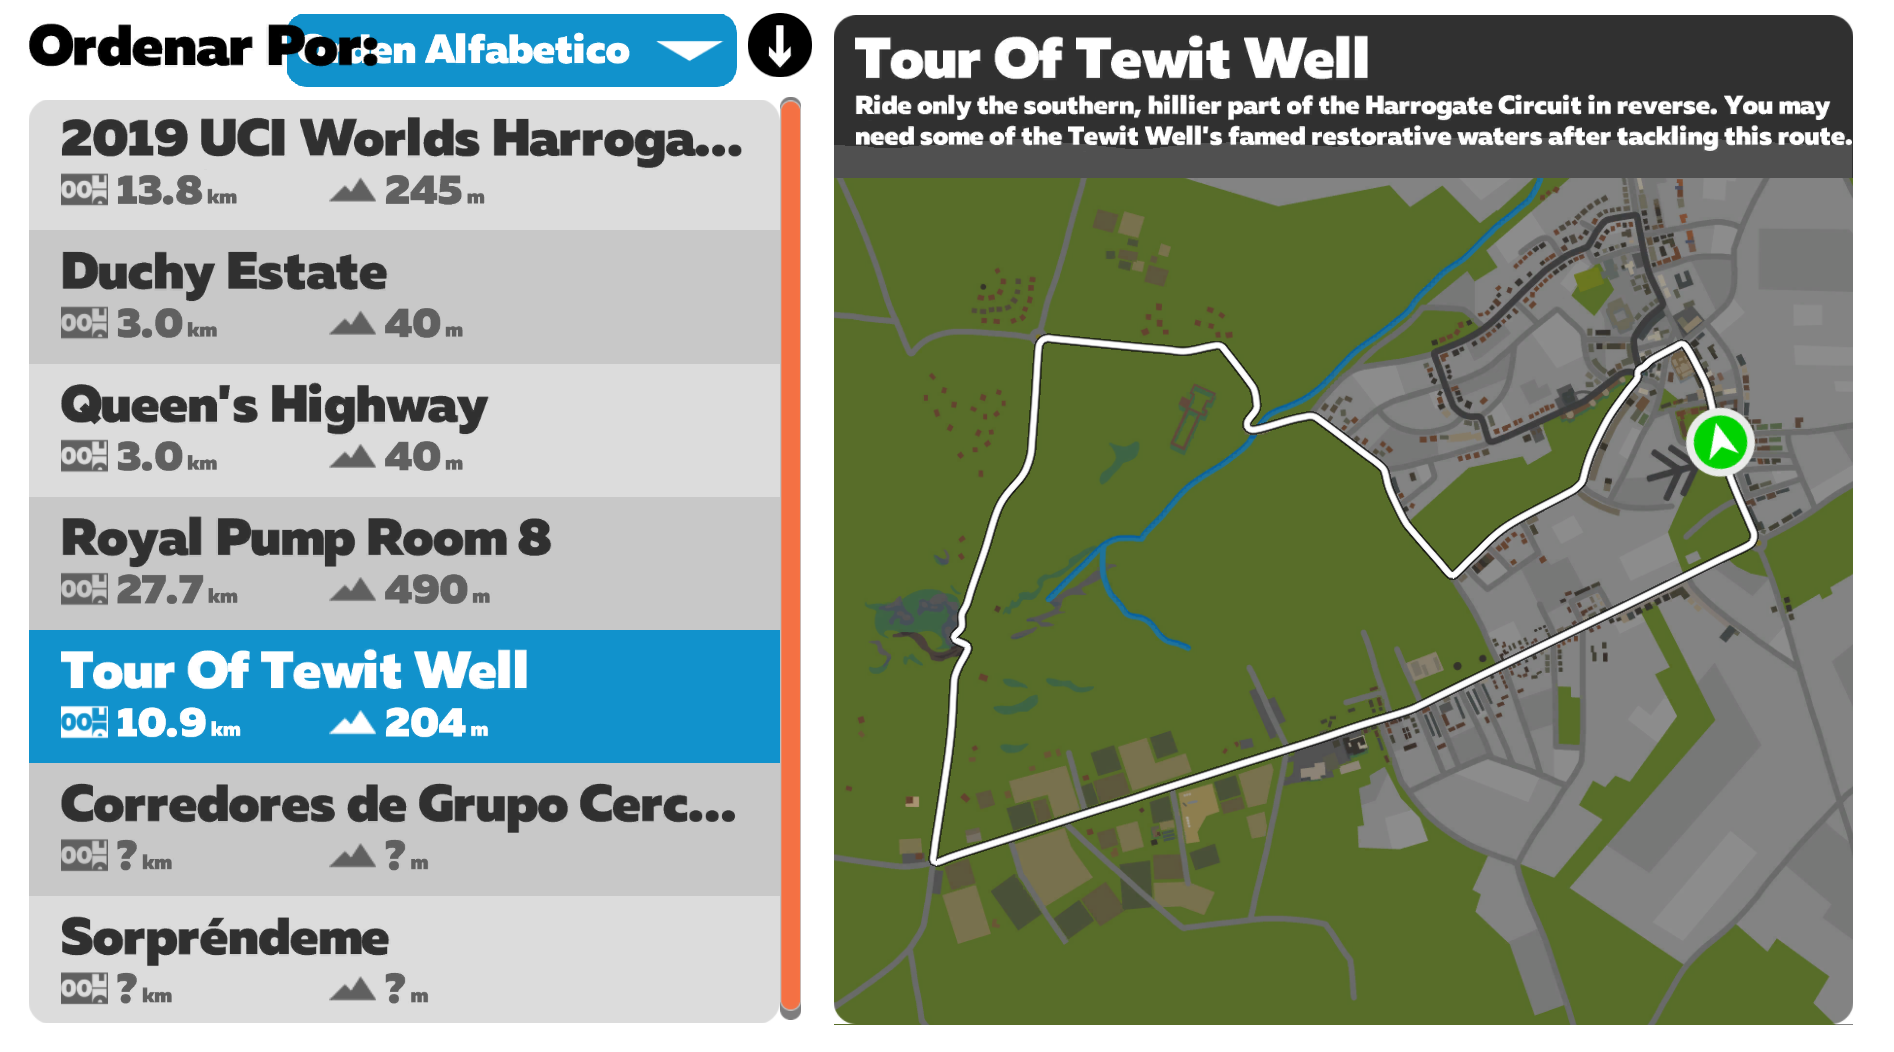 Rutas Zwift Tour of Tewit Well